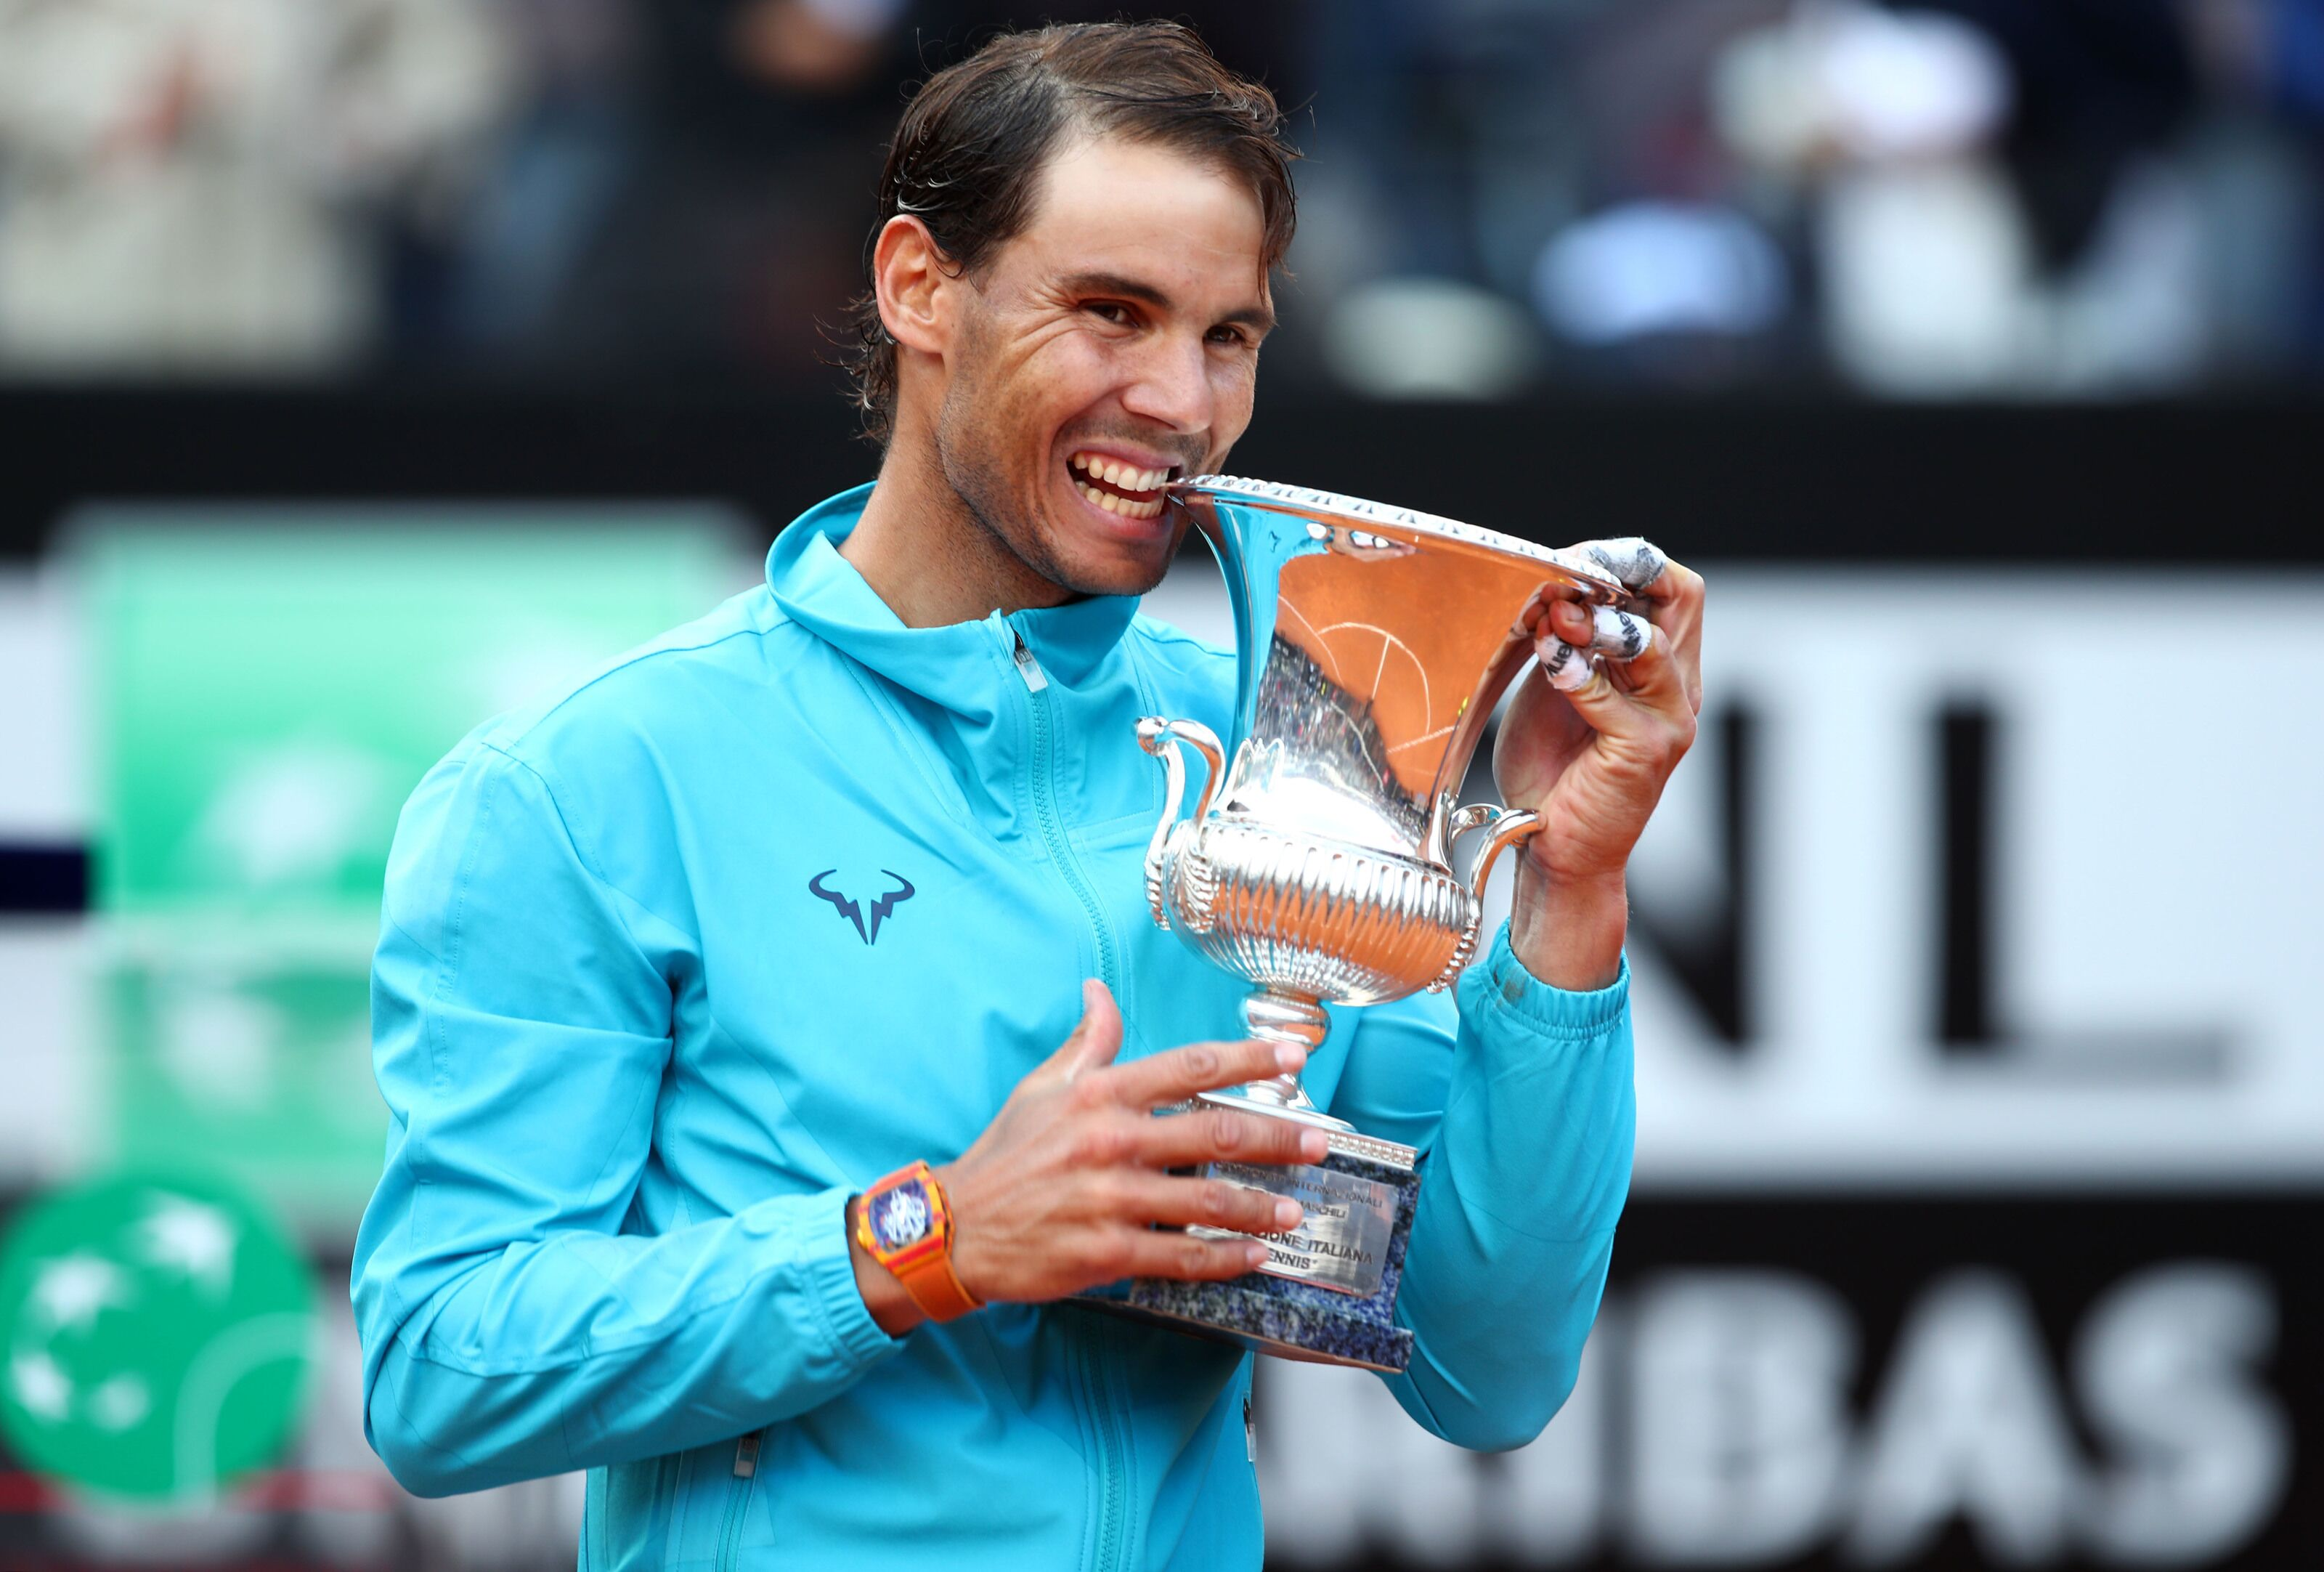 Italian Open: Rafael Nadal wins in Rome, is Roland Garros next?